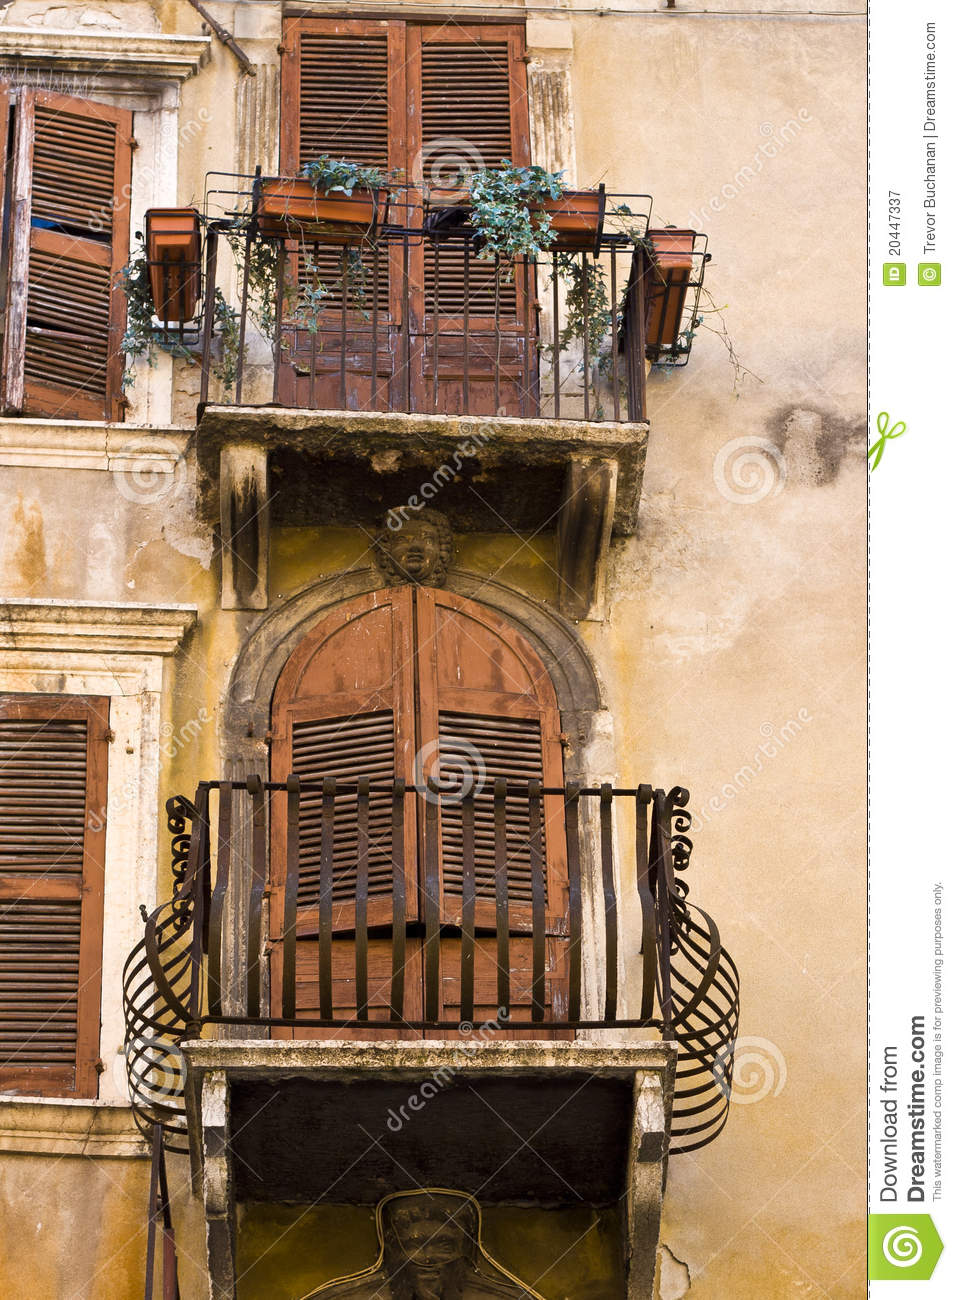 Rustic balcony stock image image of verona rusty italy for What is a balcony